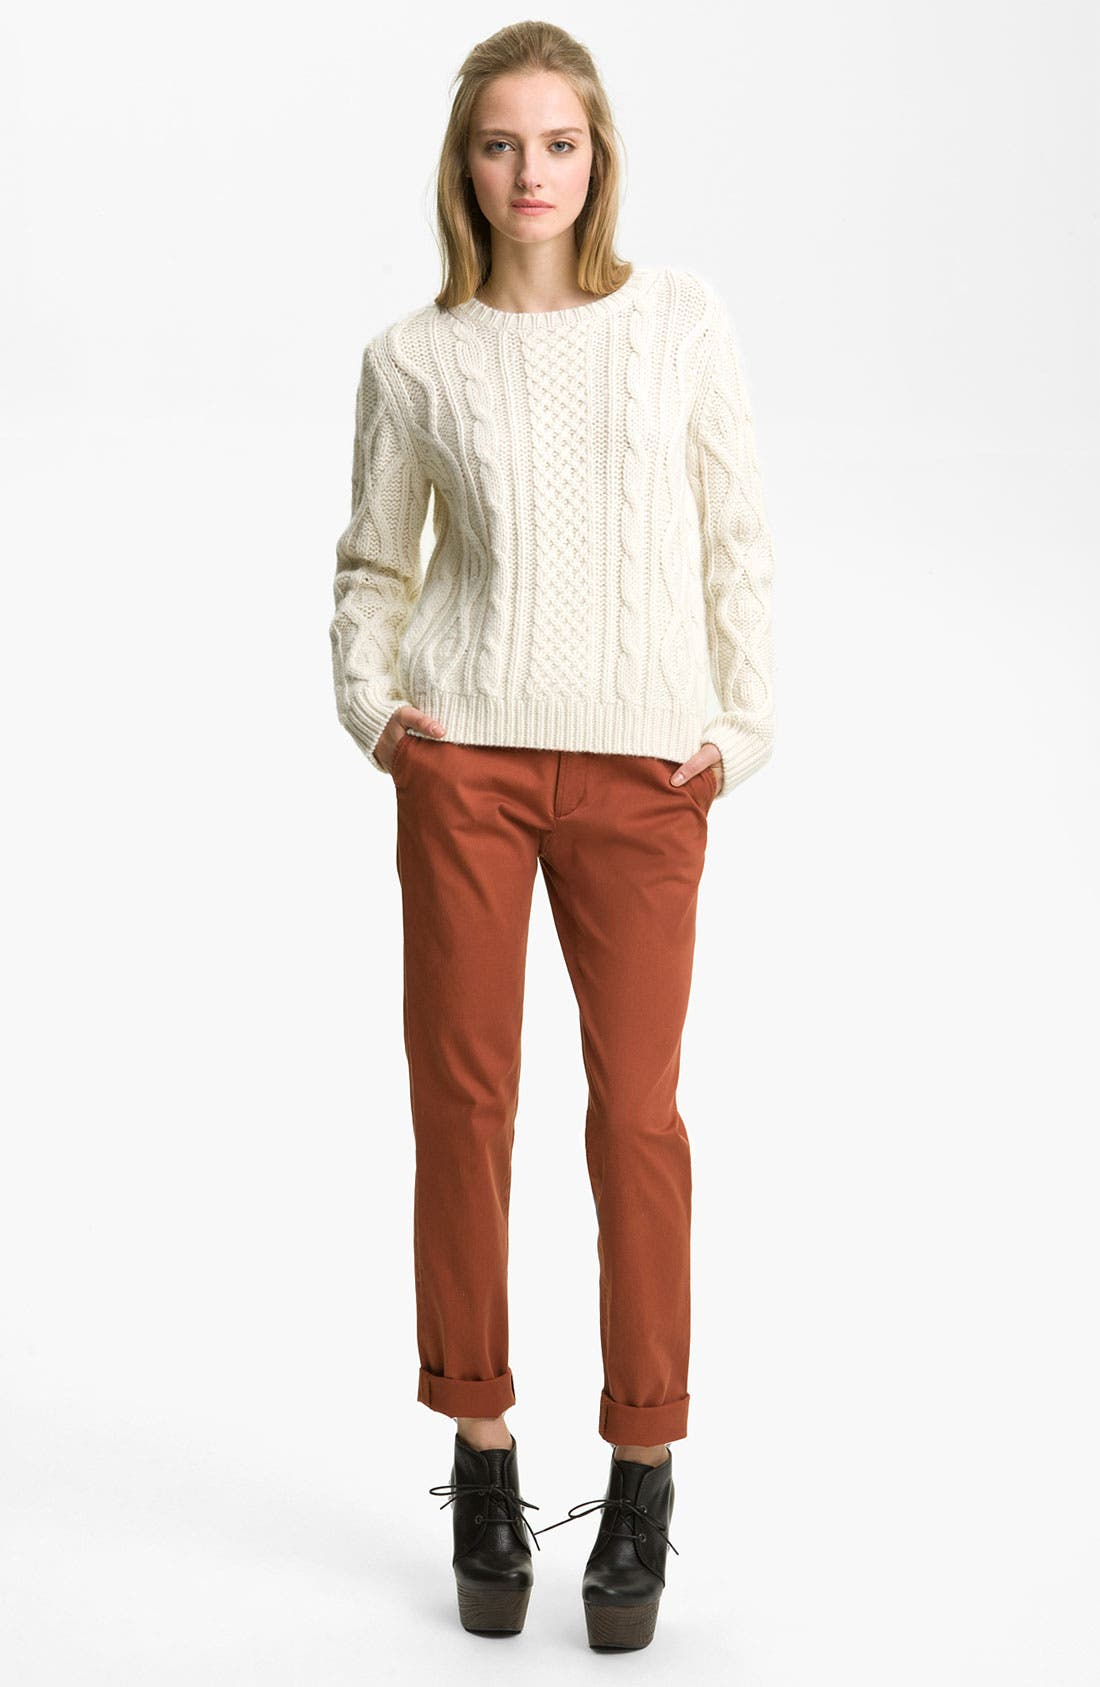 Alternate Image 1 Selected - A.P.C. Cable Knit Pullover Sweater